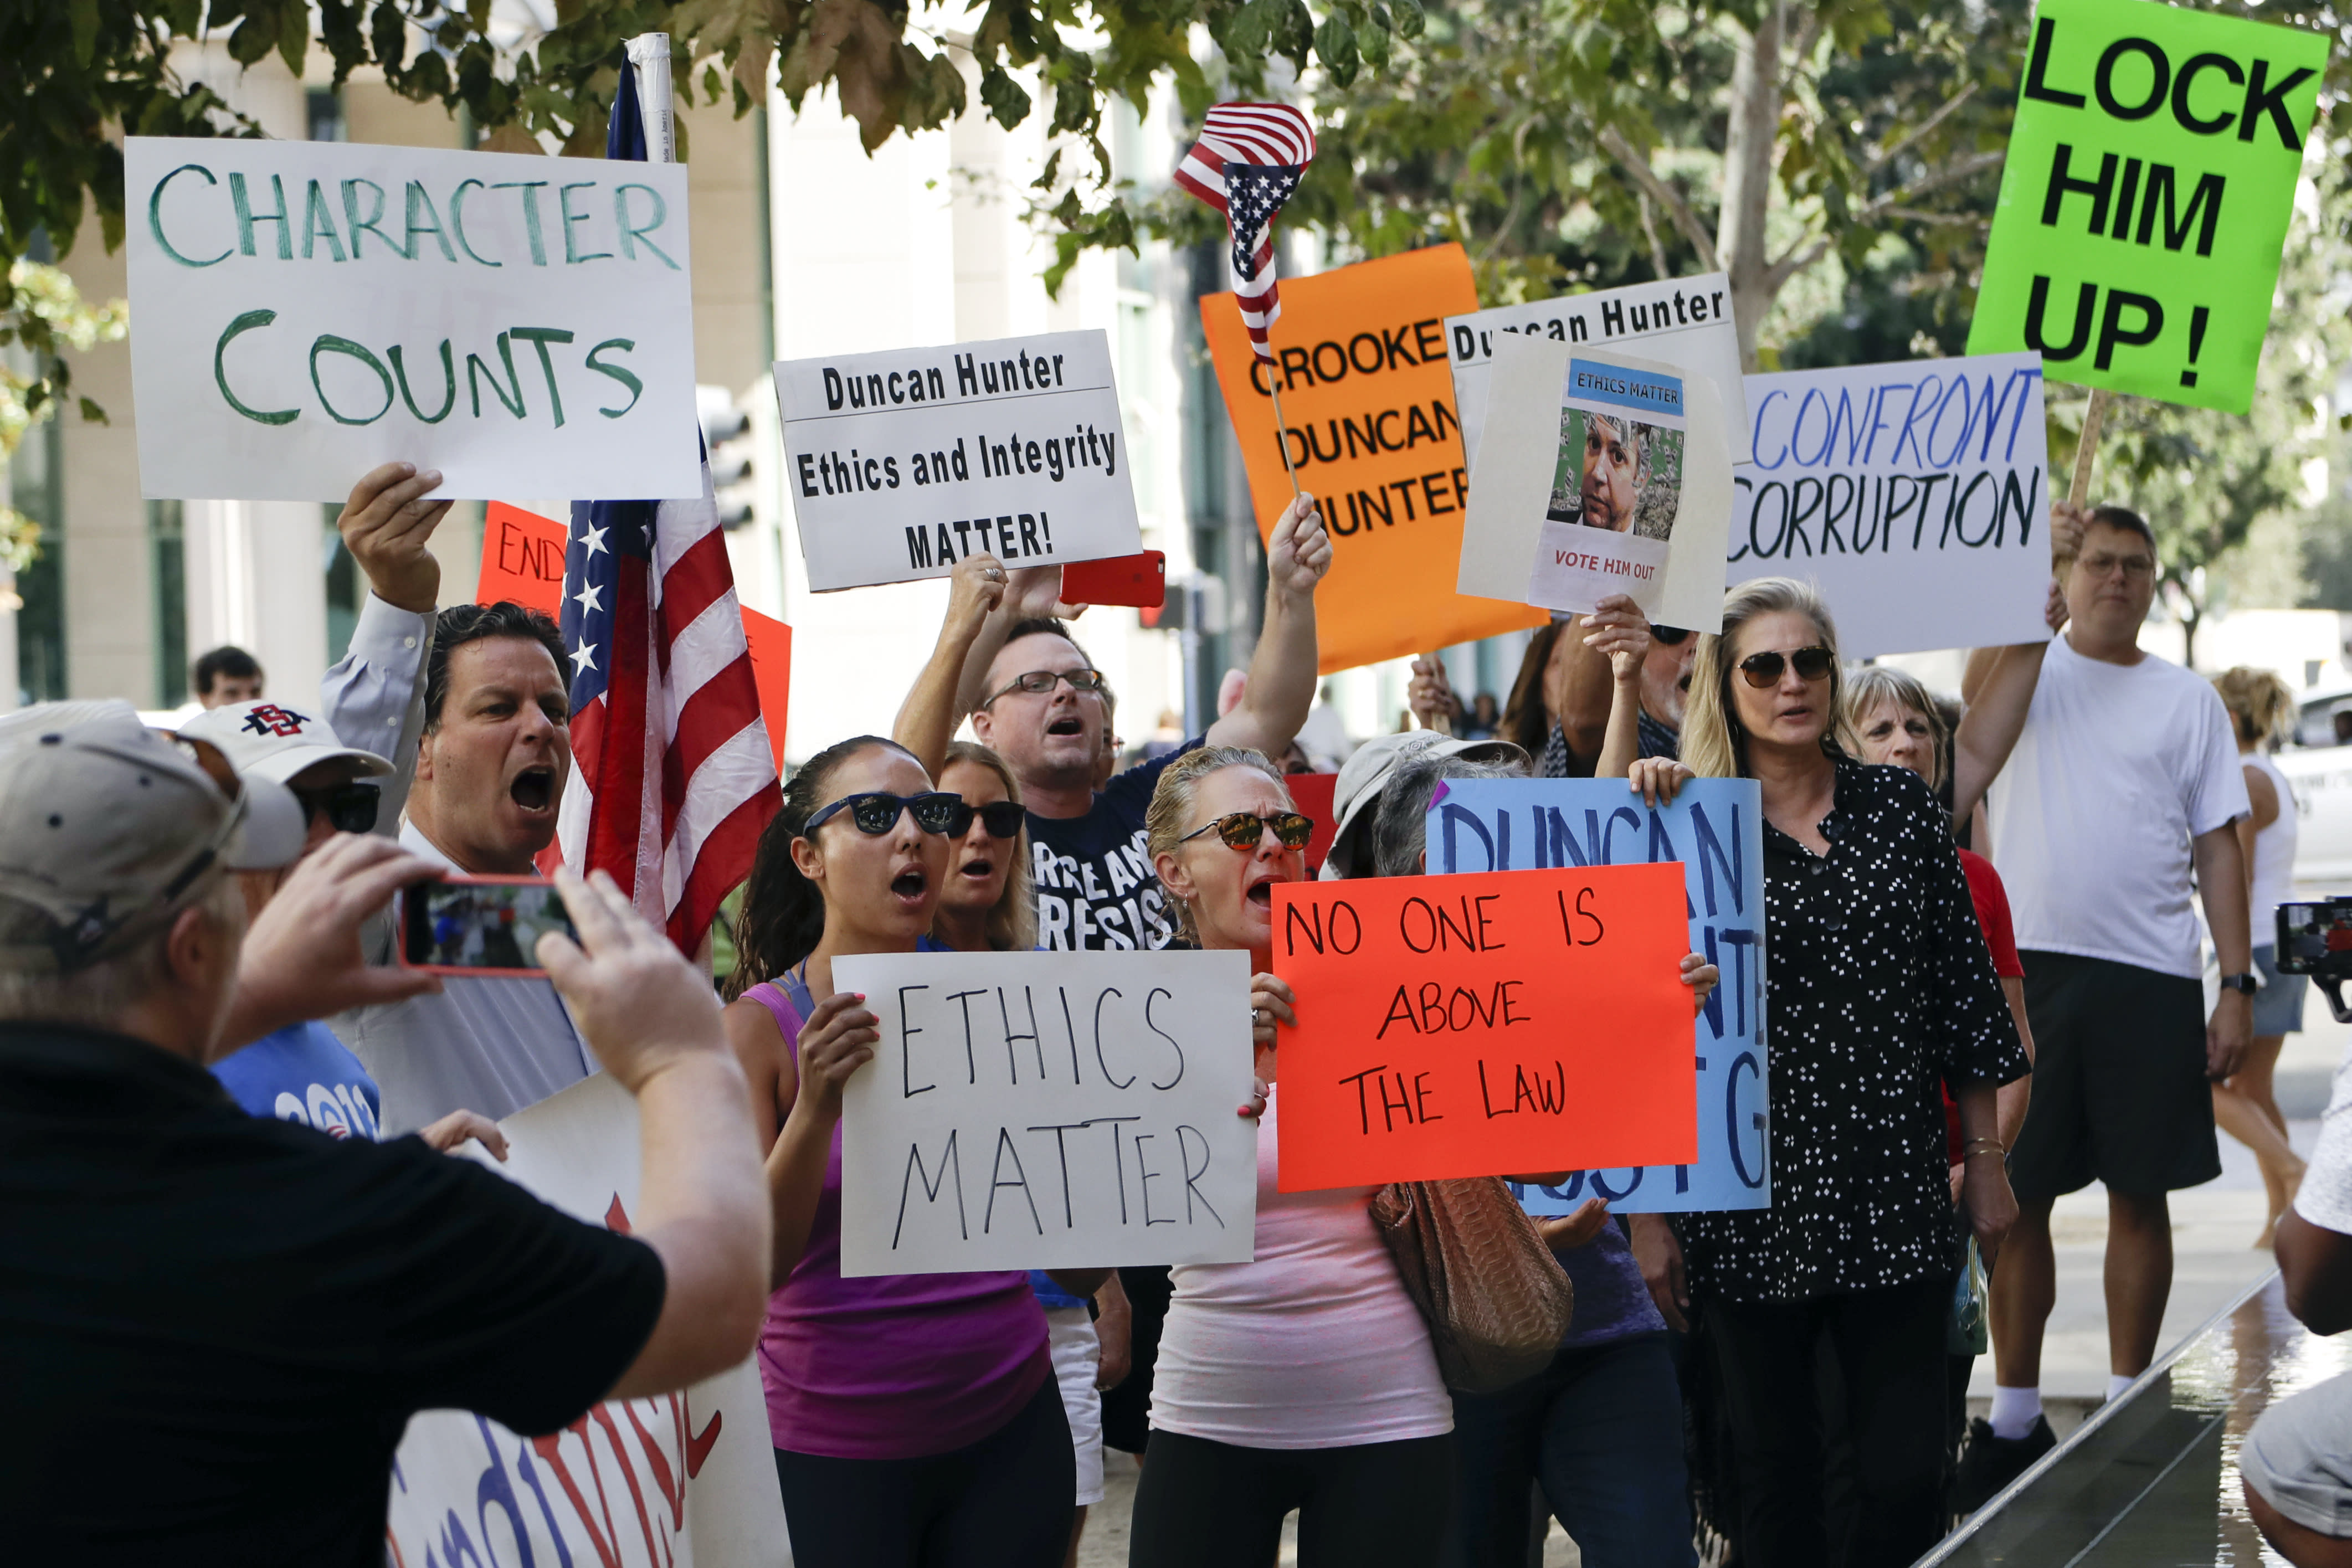 Protesters chant slogans as U.S. Rep. Duncan Hunter arrives for an arraignment hearing Thursday, Aug. 23, 2018, in San Diego. Hunter and his wife were indicted Tuesday on federal charges that they used more than $250,000 in campaign funds for personal expenses that ranged from groceries to golf trips and lied about it in federal filings, prosecutors said. (AP Photo/Gregory Bull)